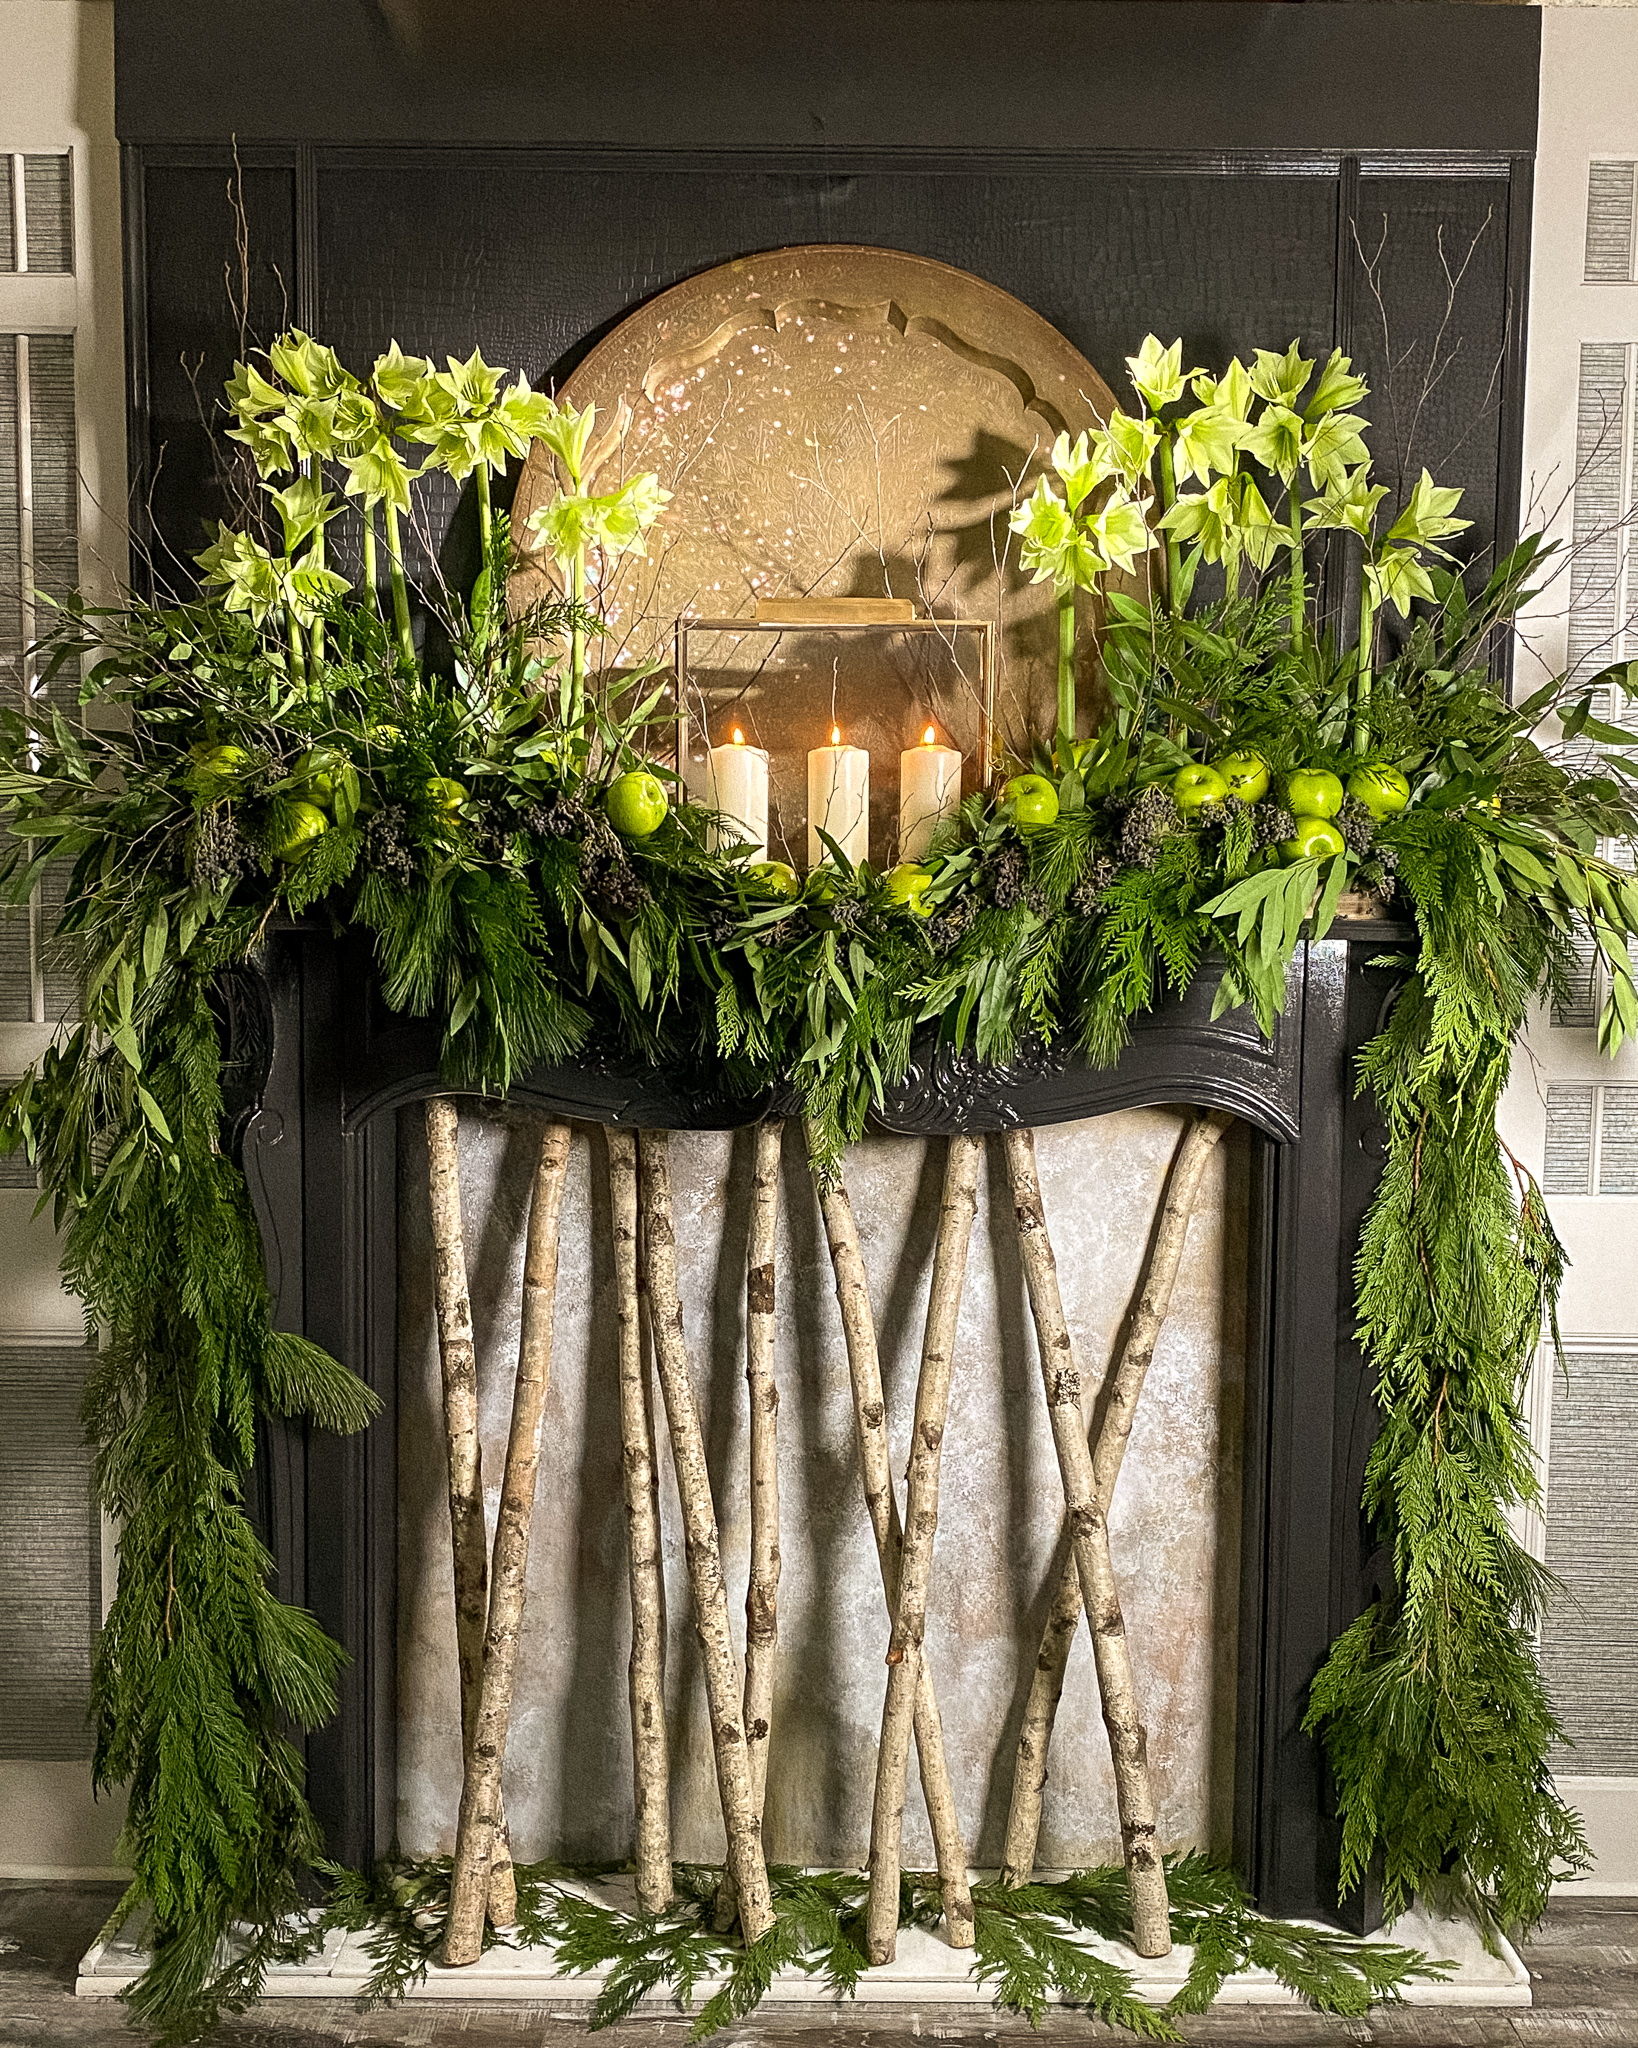 Green flowers and green apples on mantle with garlands to match